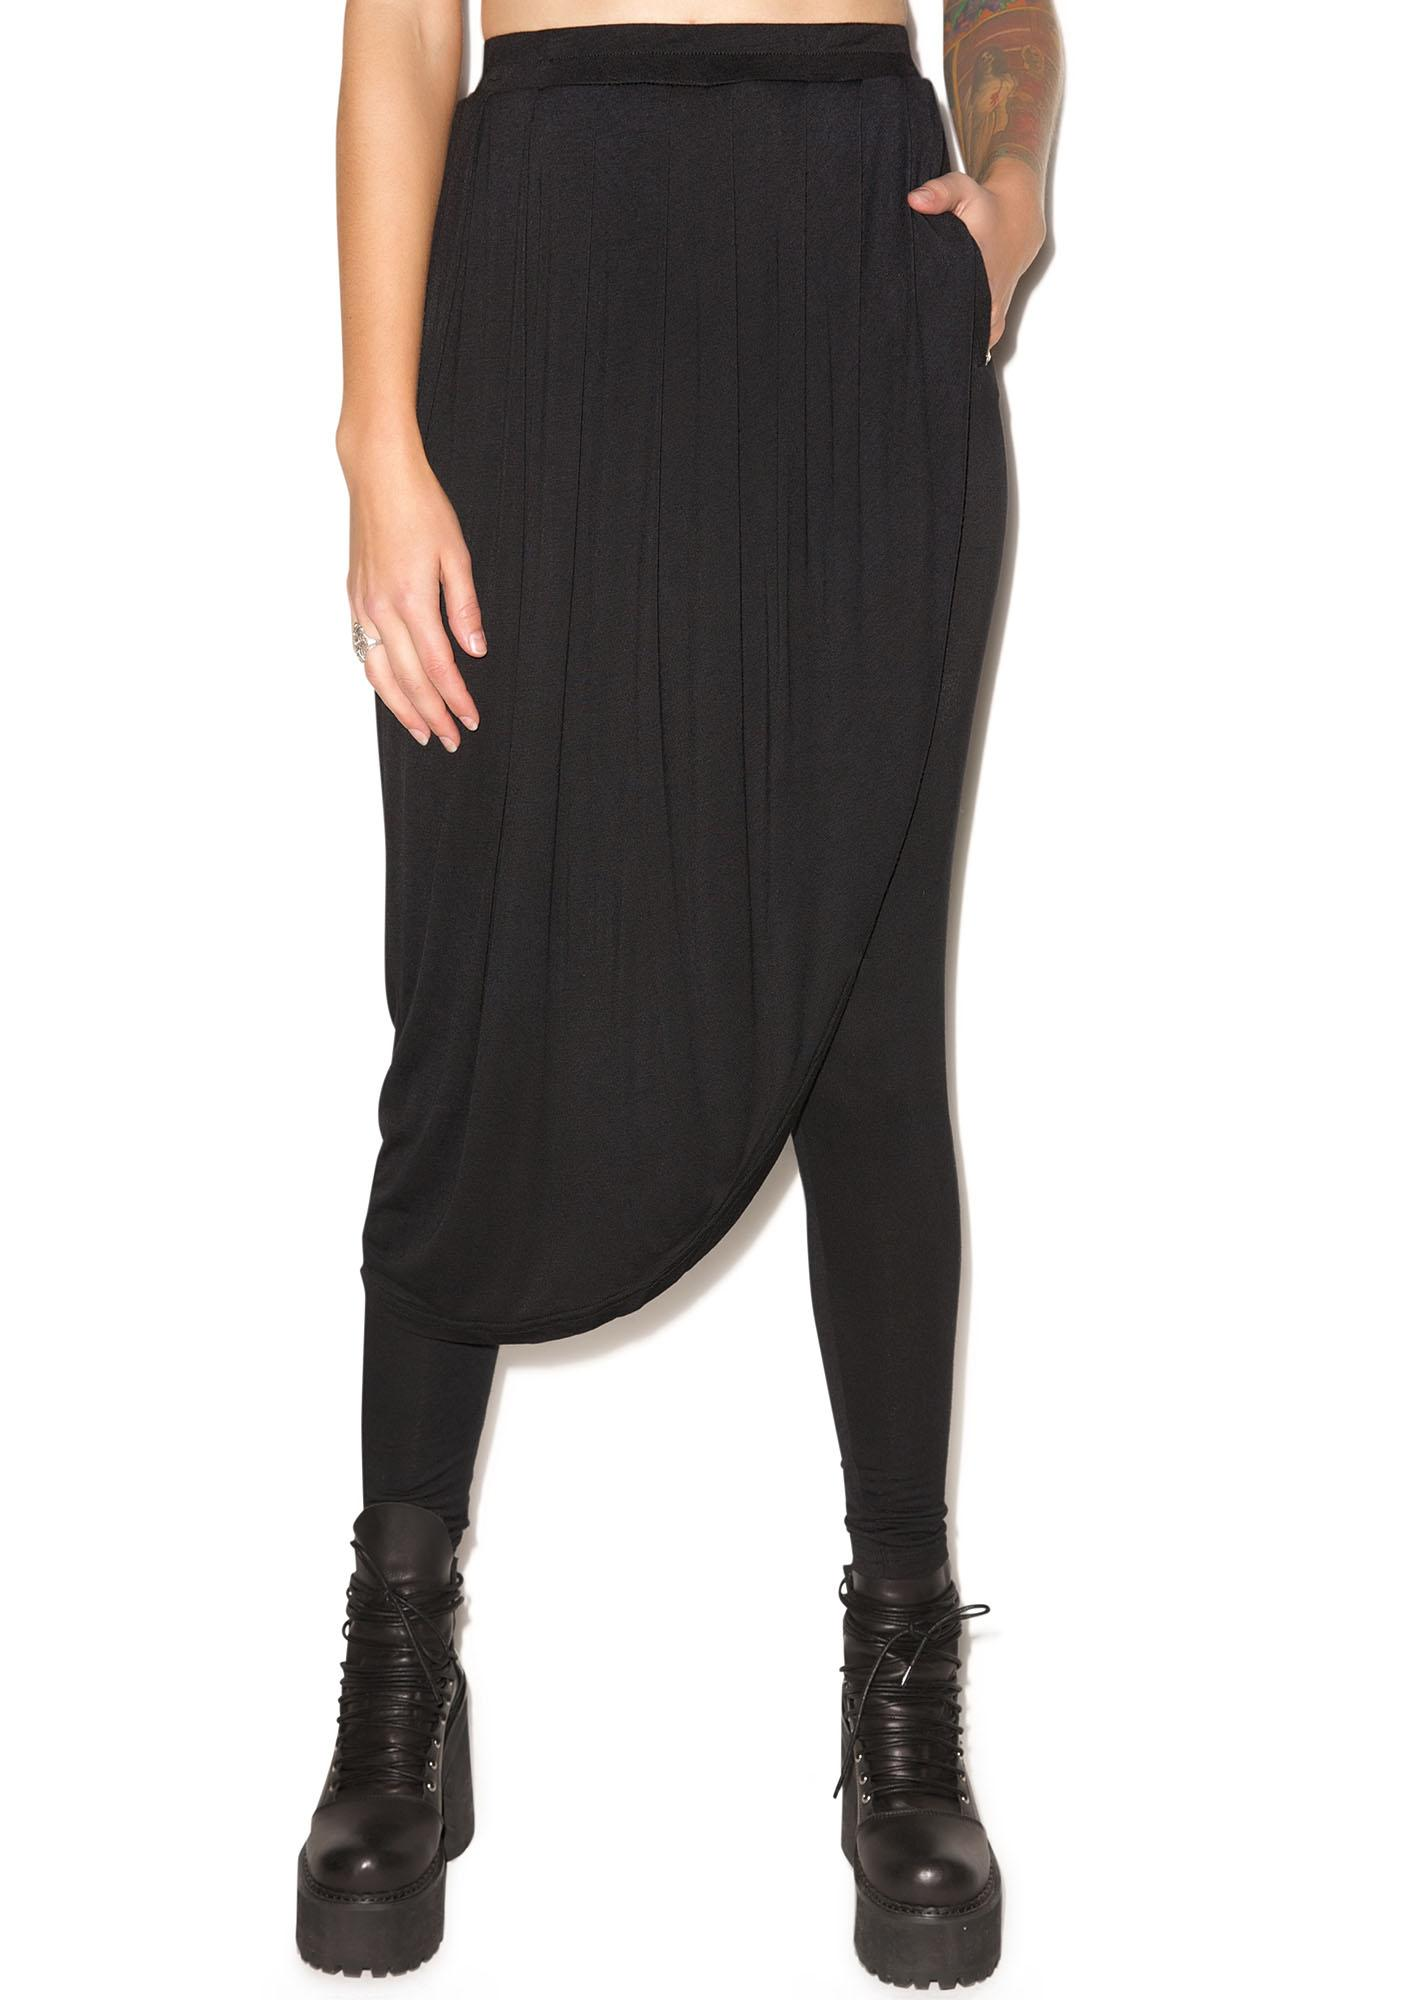 HLZBLZ Drape Out Legging